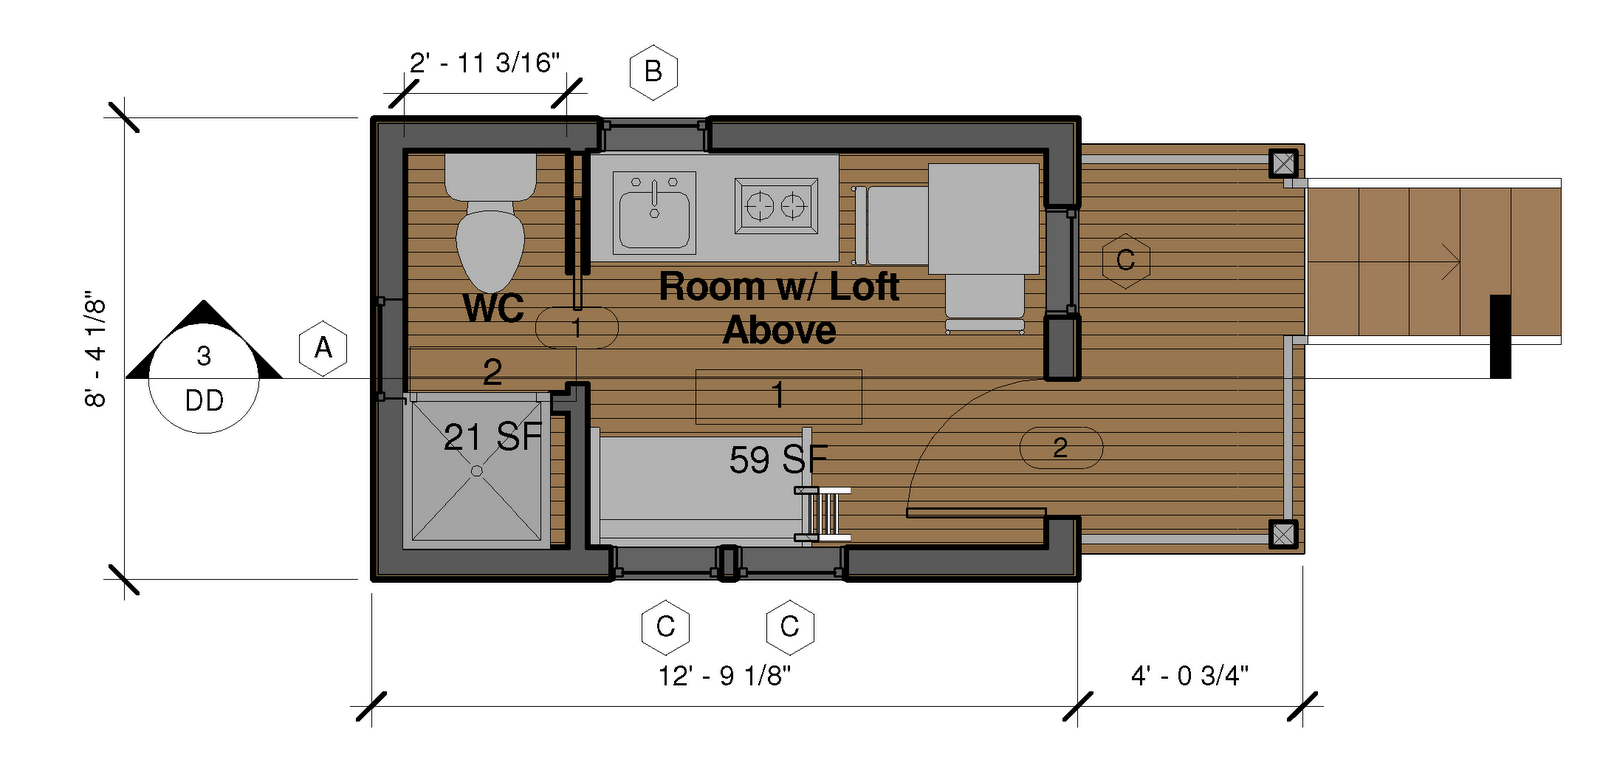 Revit learning club january 2011 for Tiny house blueprints free